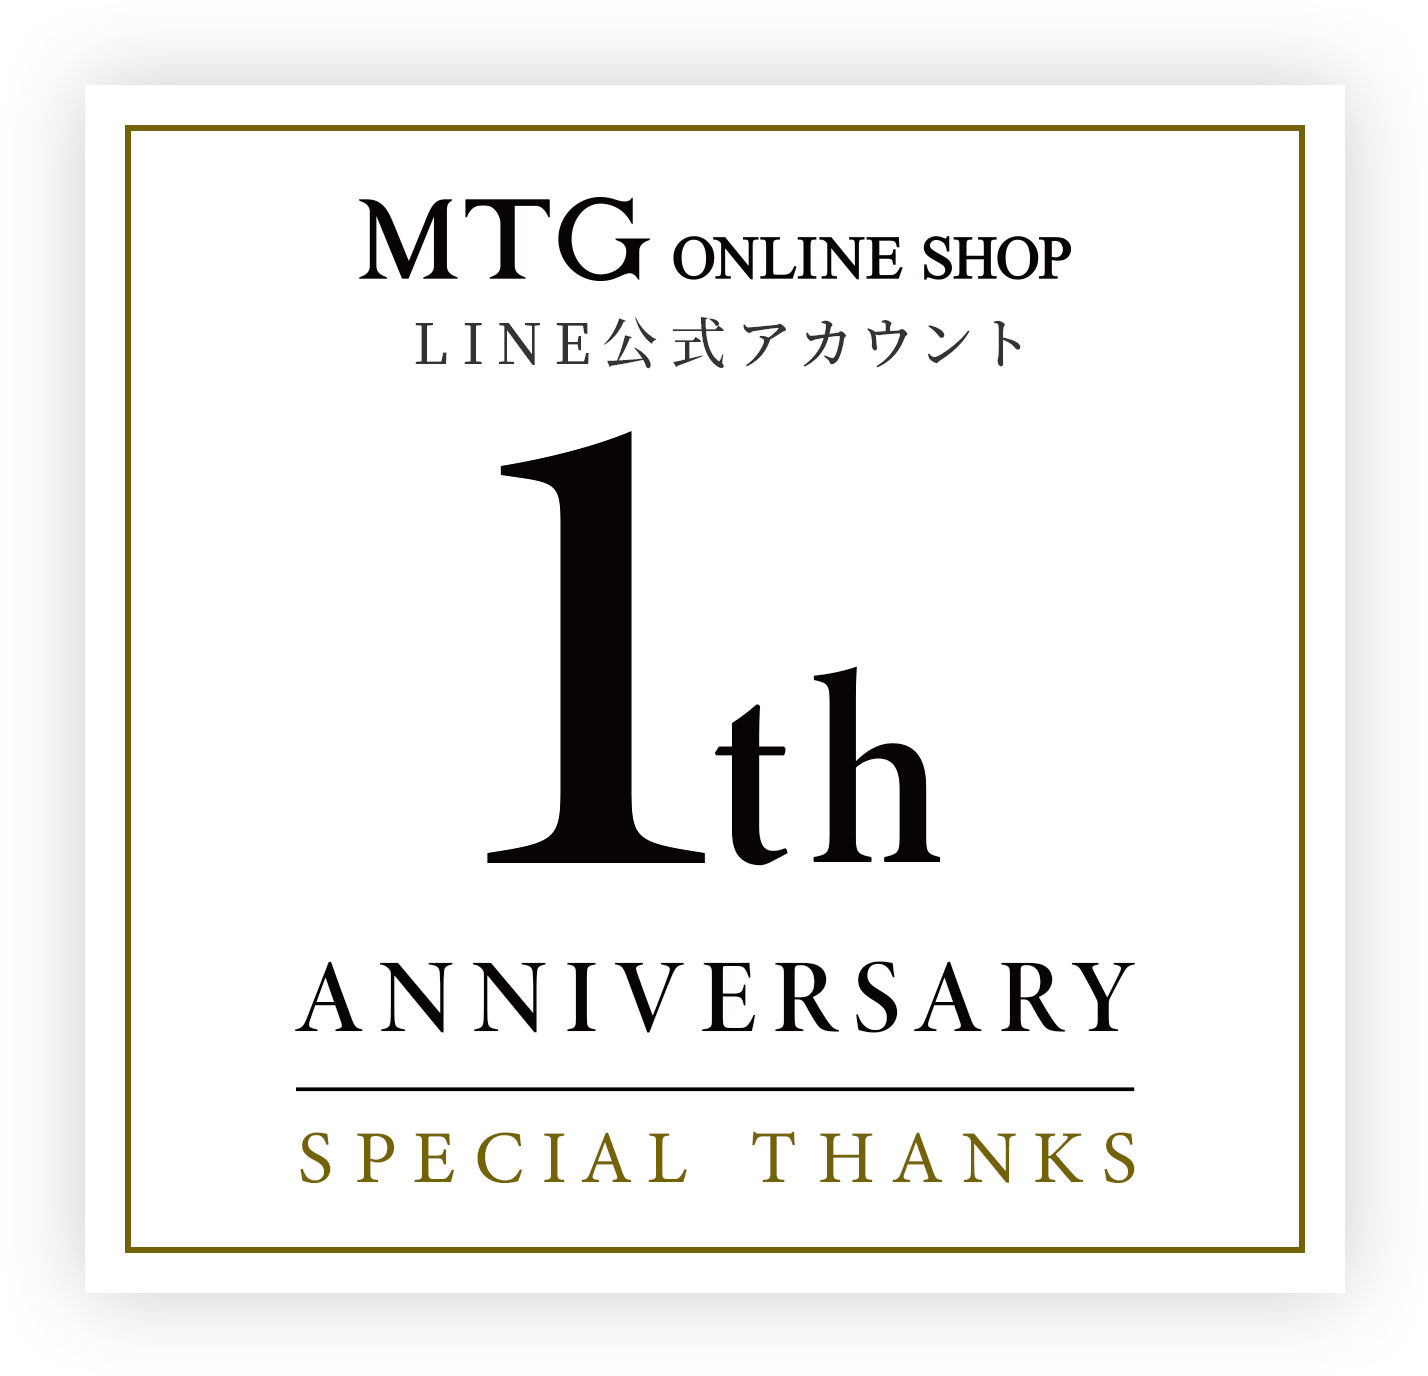 MTG ONLINESHOP LINE公式アカウント 1th ANNIVERSARY SPECIAL THANKS